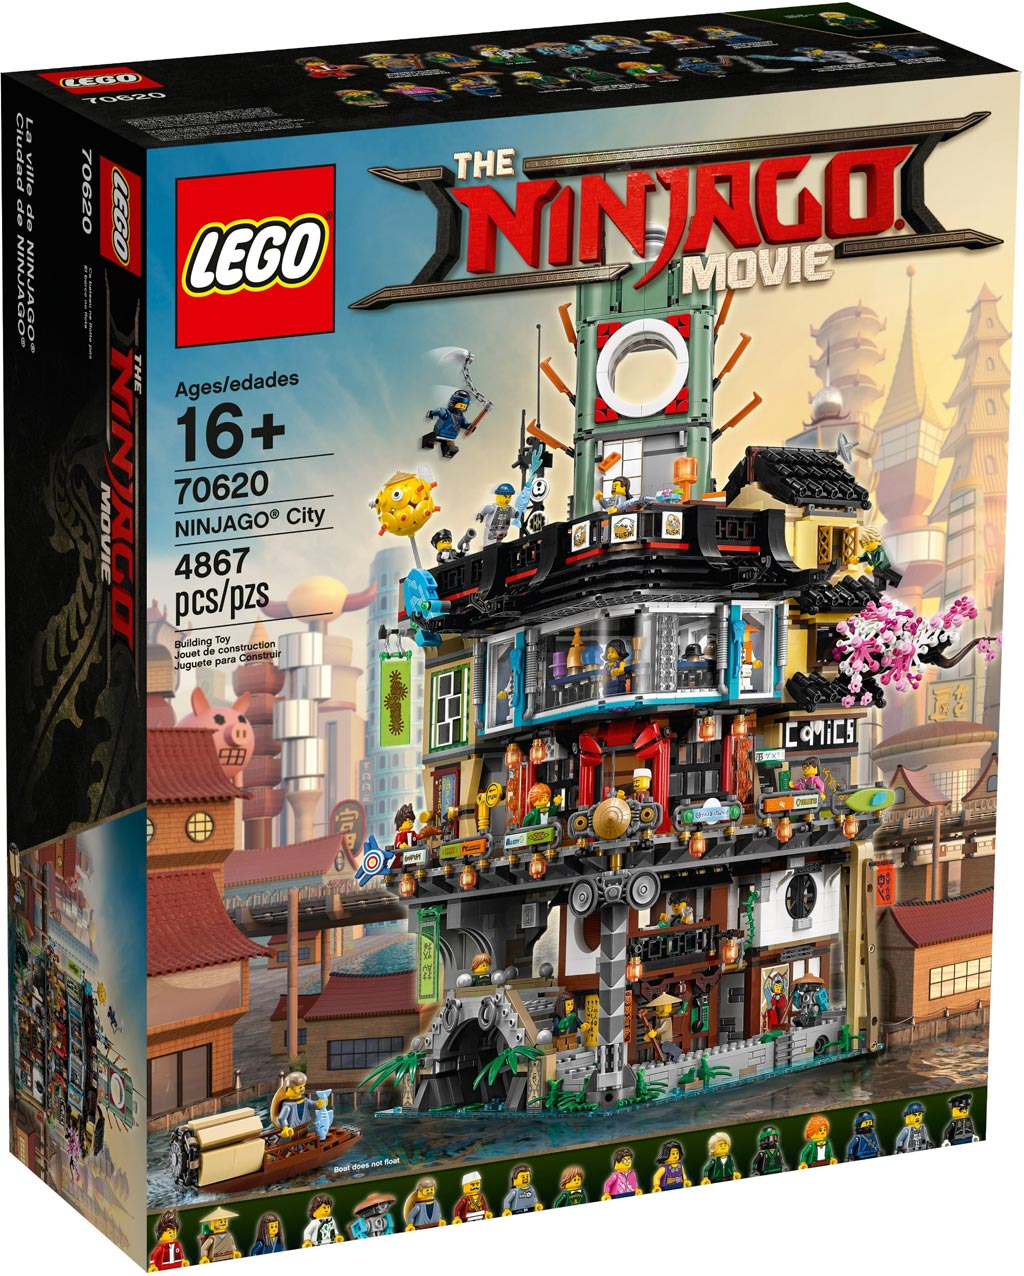 the-lego-ninjago-movie-ninjago-city-70620-2017-box-gross zusammengebaut.com